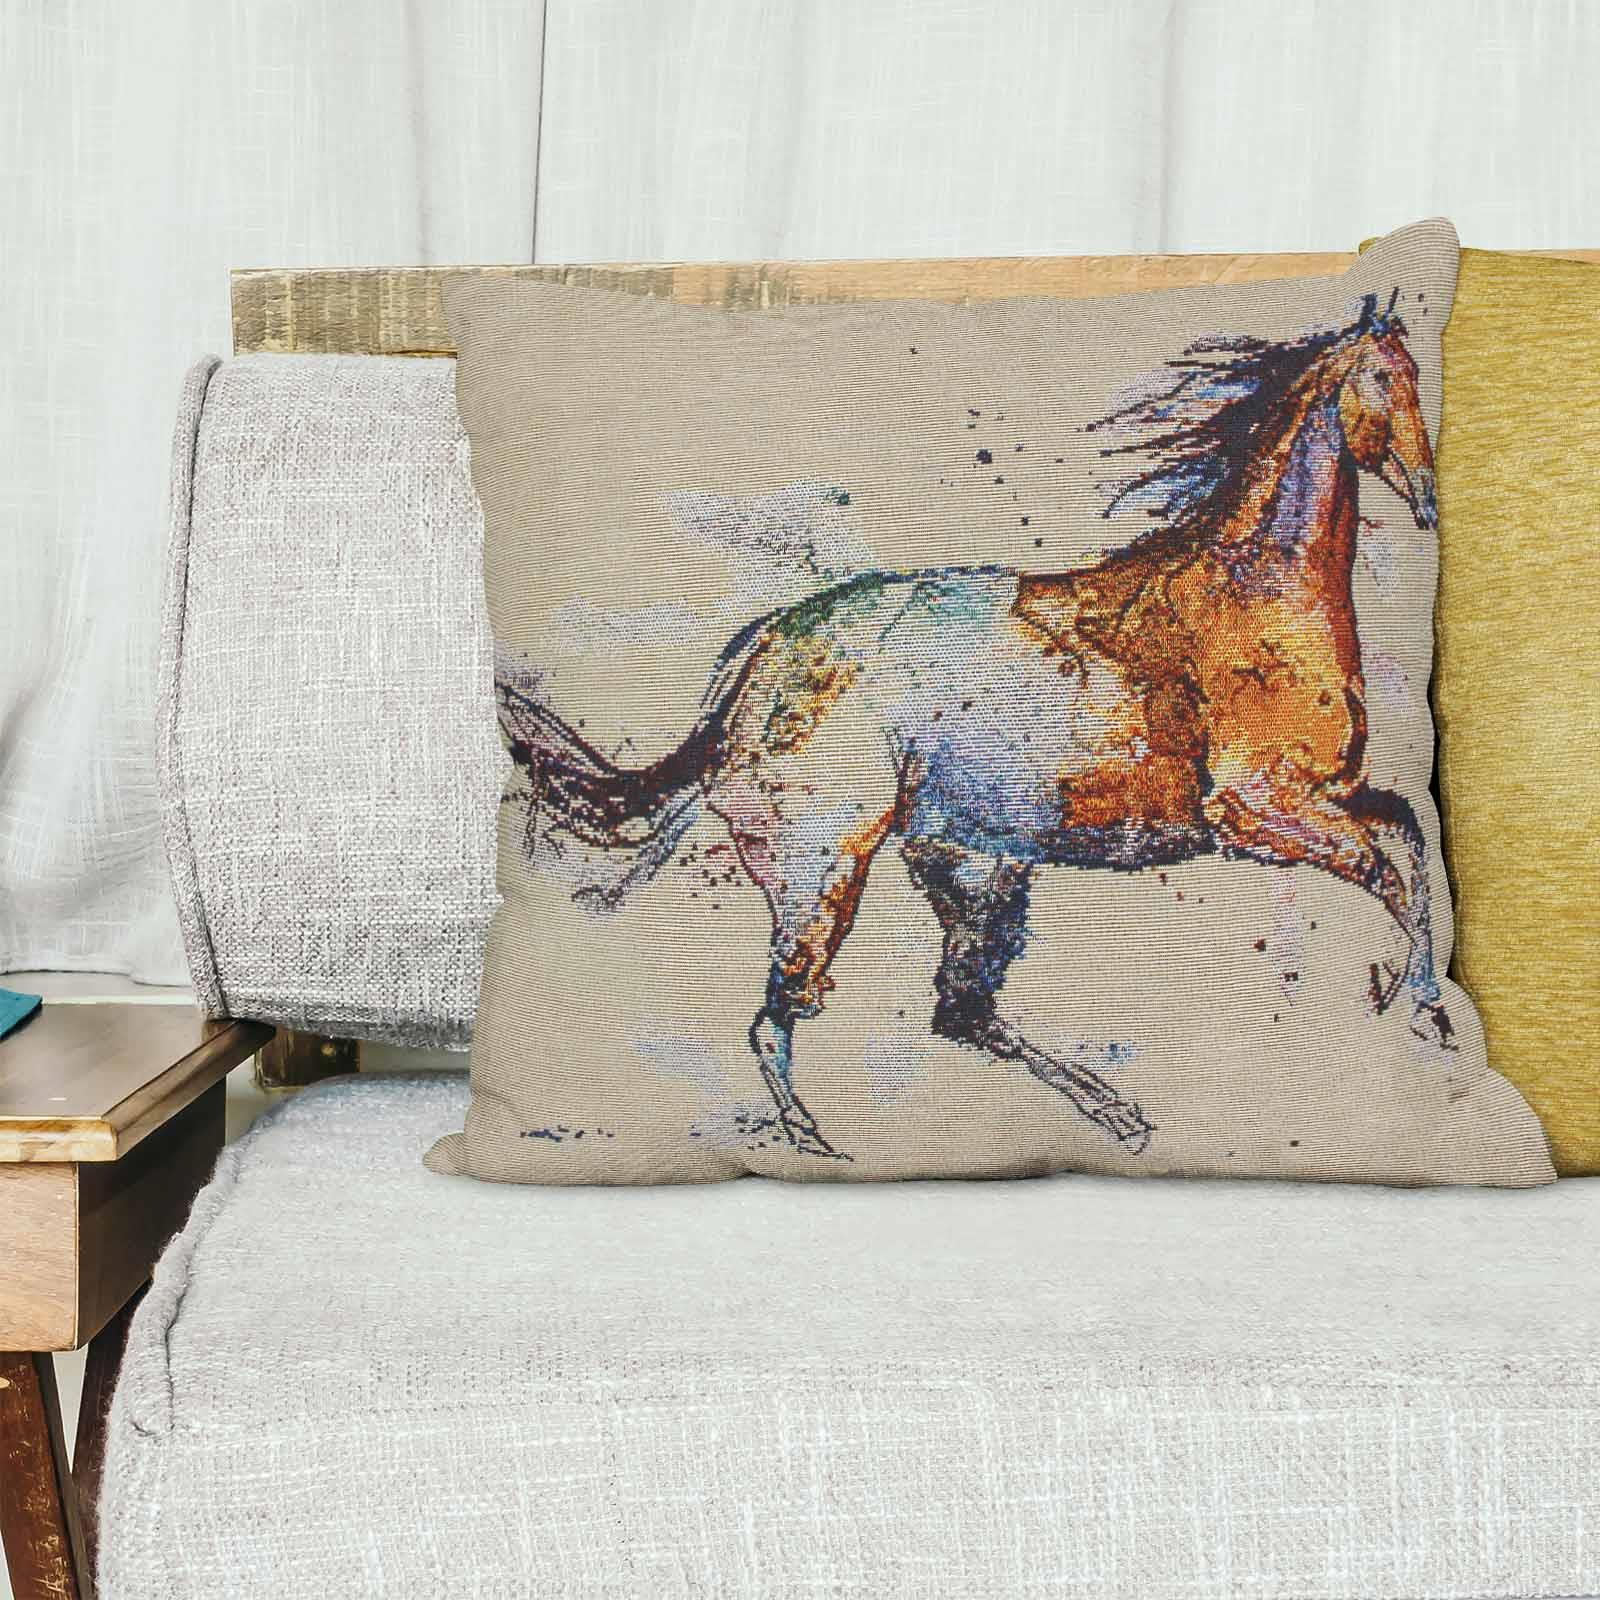 Tapestry-Cushion-Covers-Vintage-Pillow-Cover-Collection-18-034-45cm-Filled-Cushions thumbnail 76